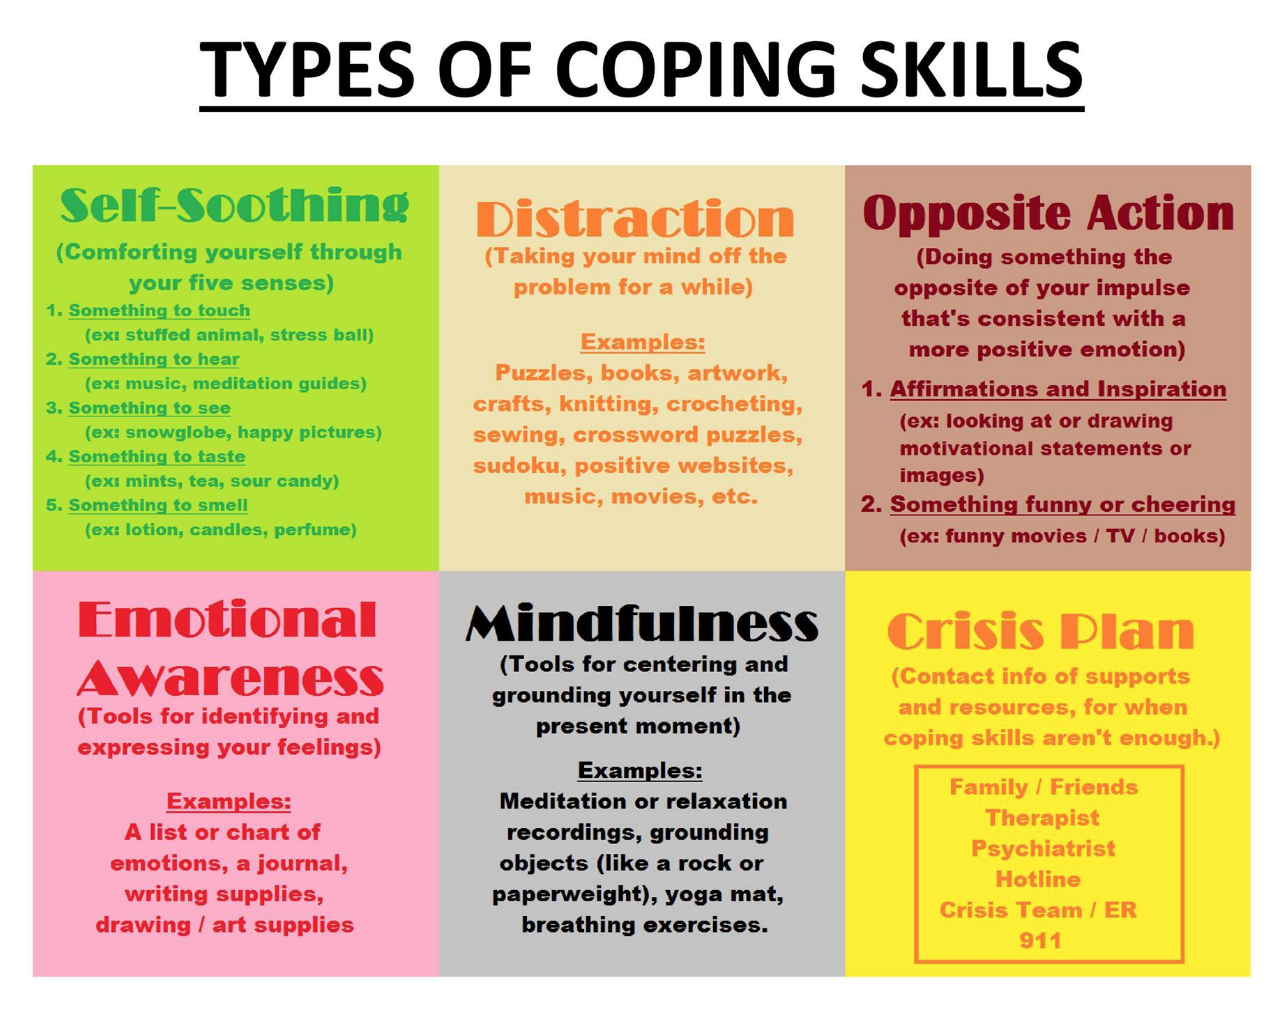 We Can All Benefit From Having Better Coping Skills